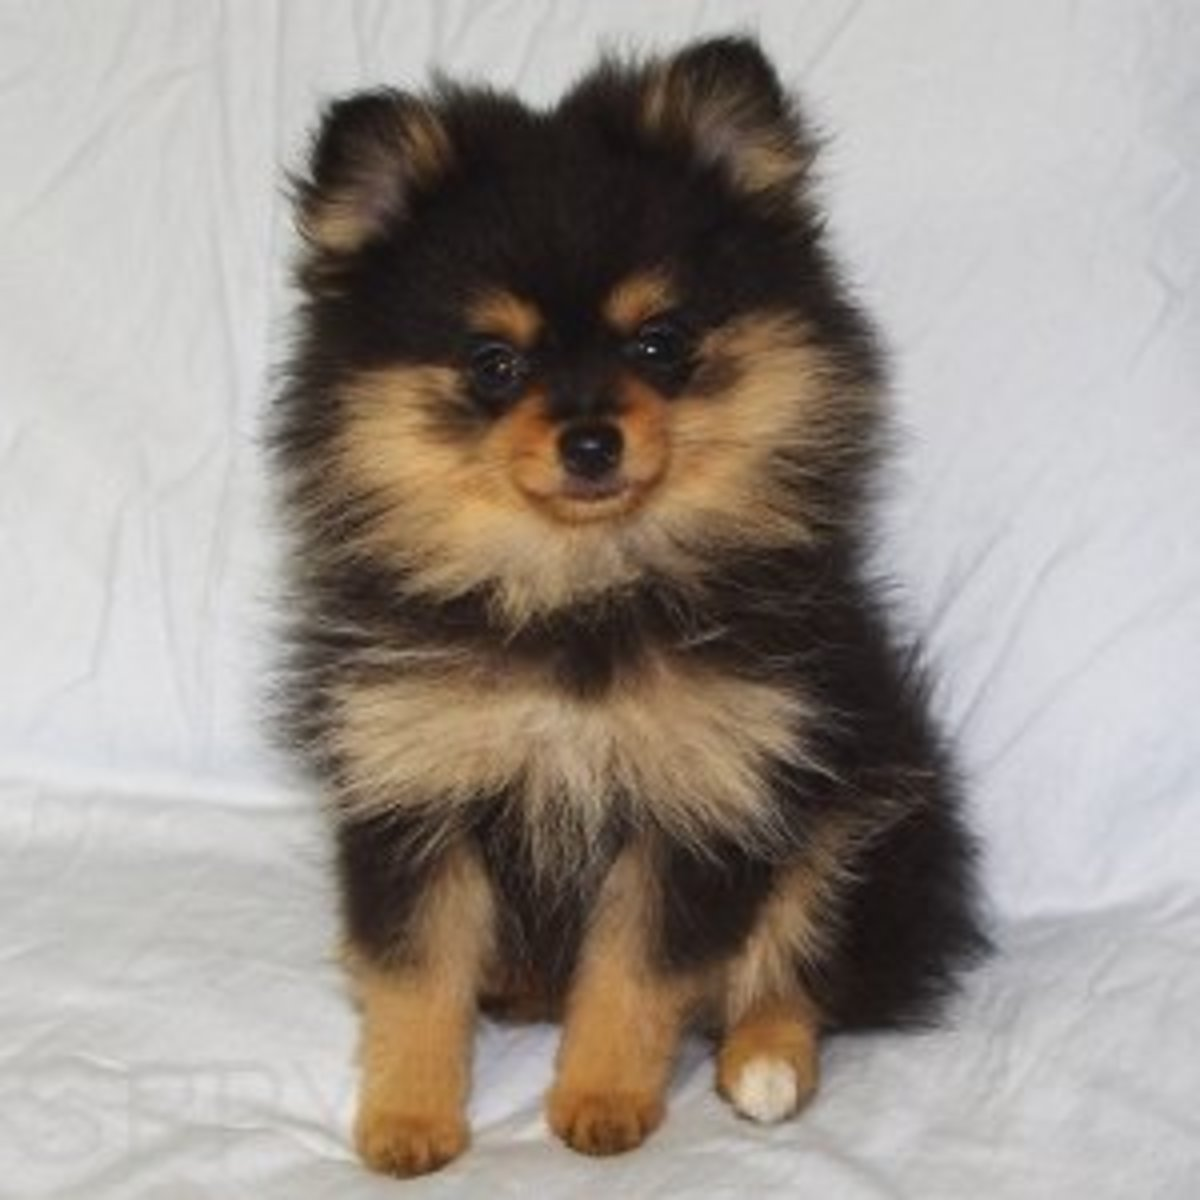 Pomchis are as sweet as they are stubborn.